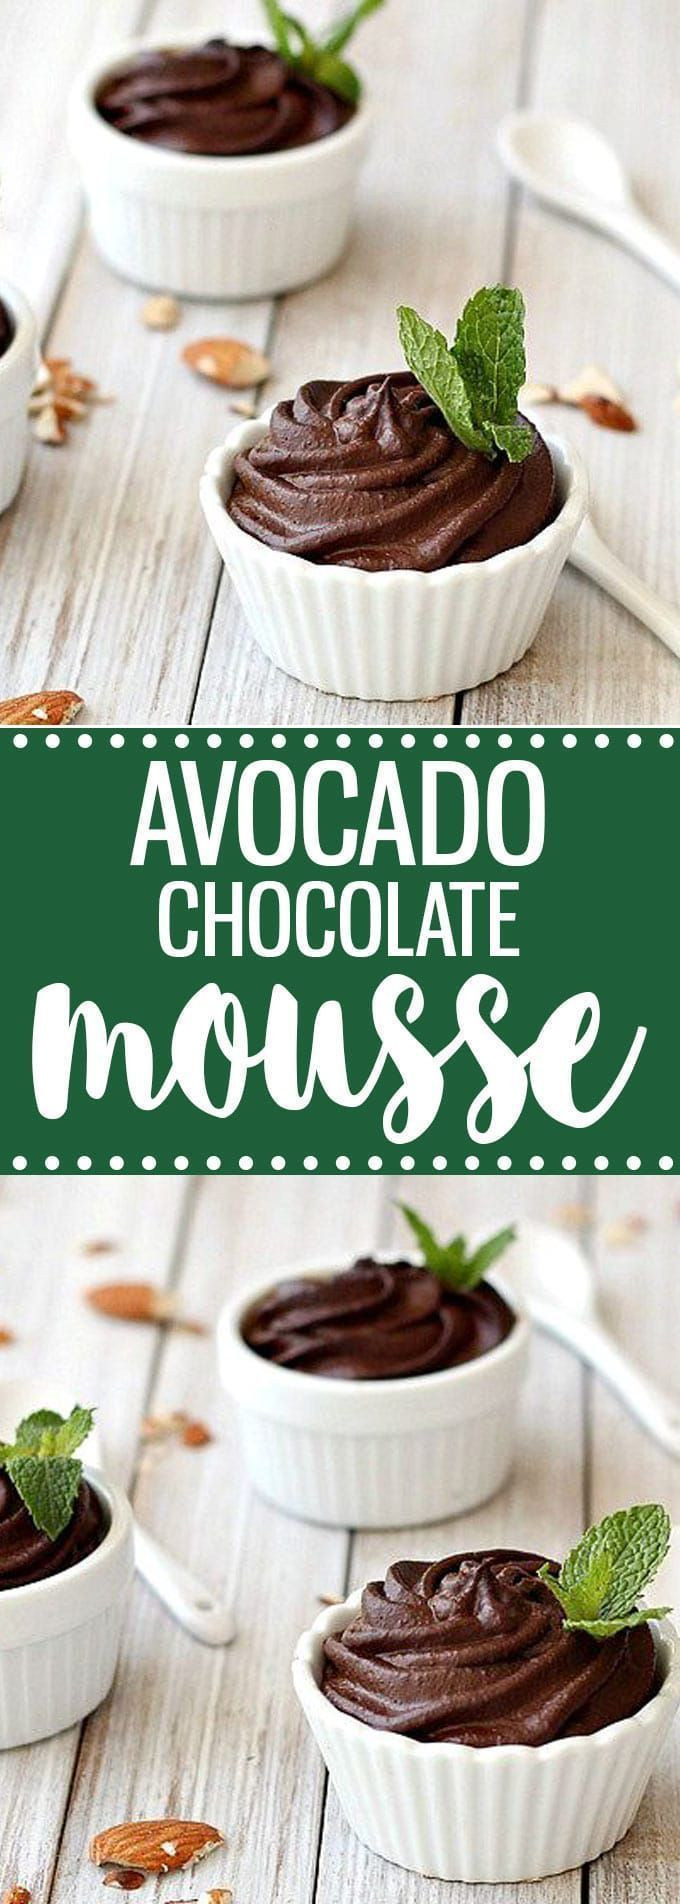 A healthy, gluten-free, egg-free, dairy-free, refined sugar-free, low carb avocado chocolate mousse. The recipe is super easy and can be made in 2 minutes!